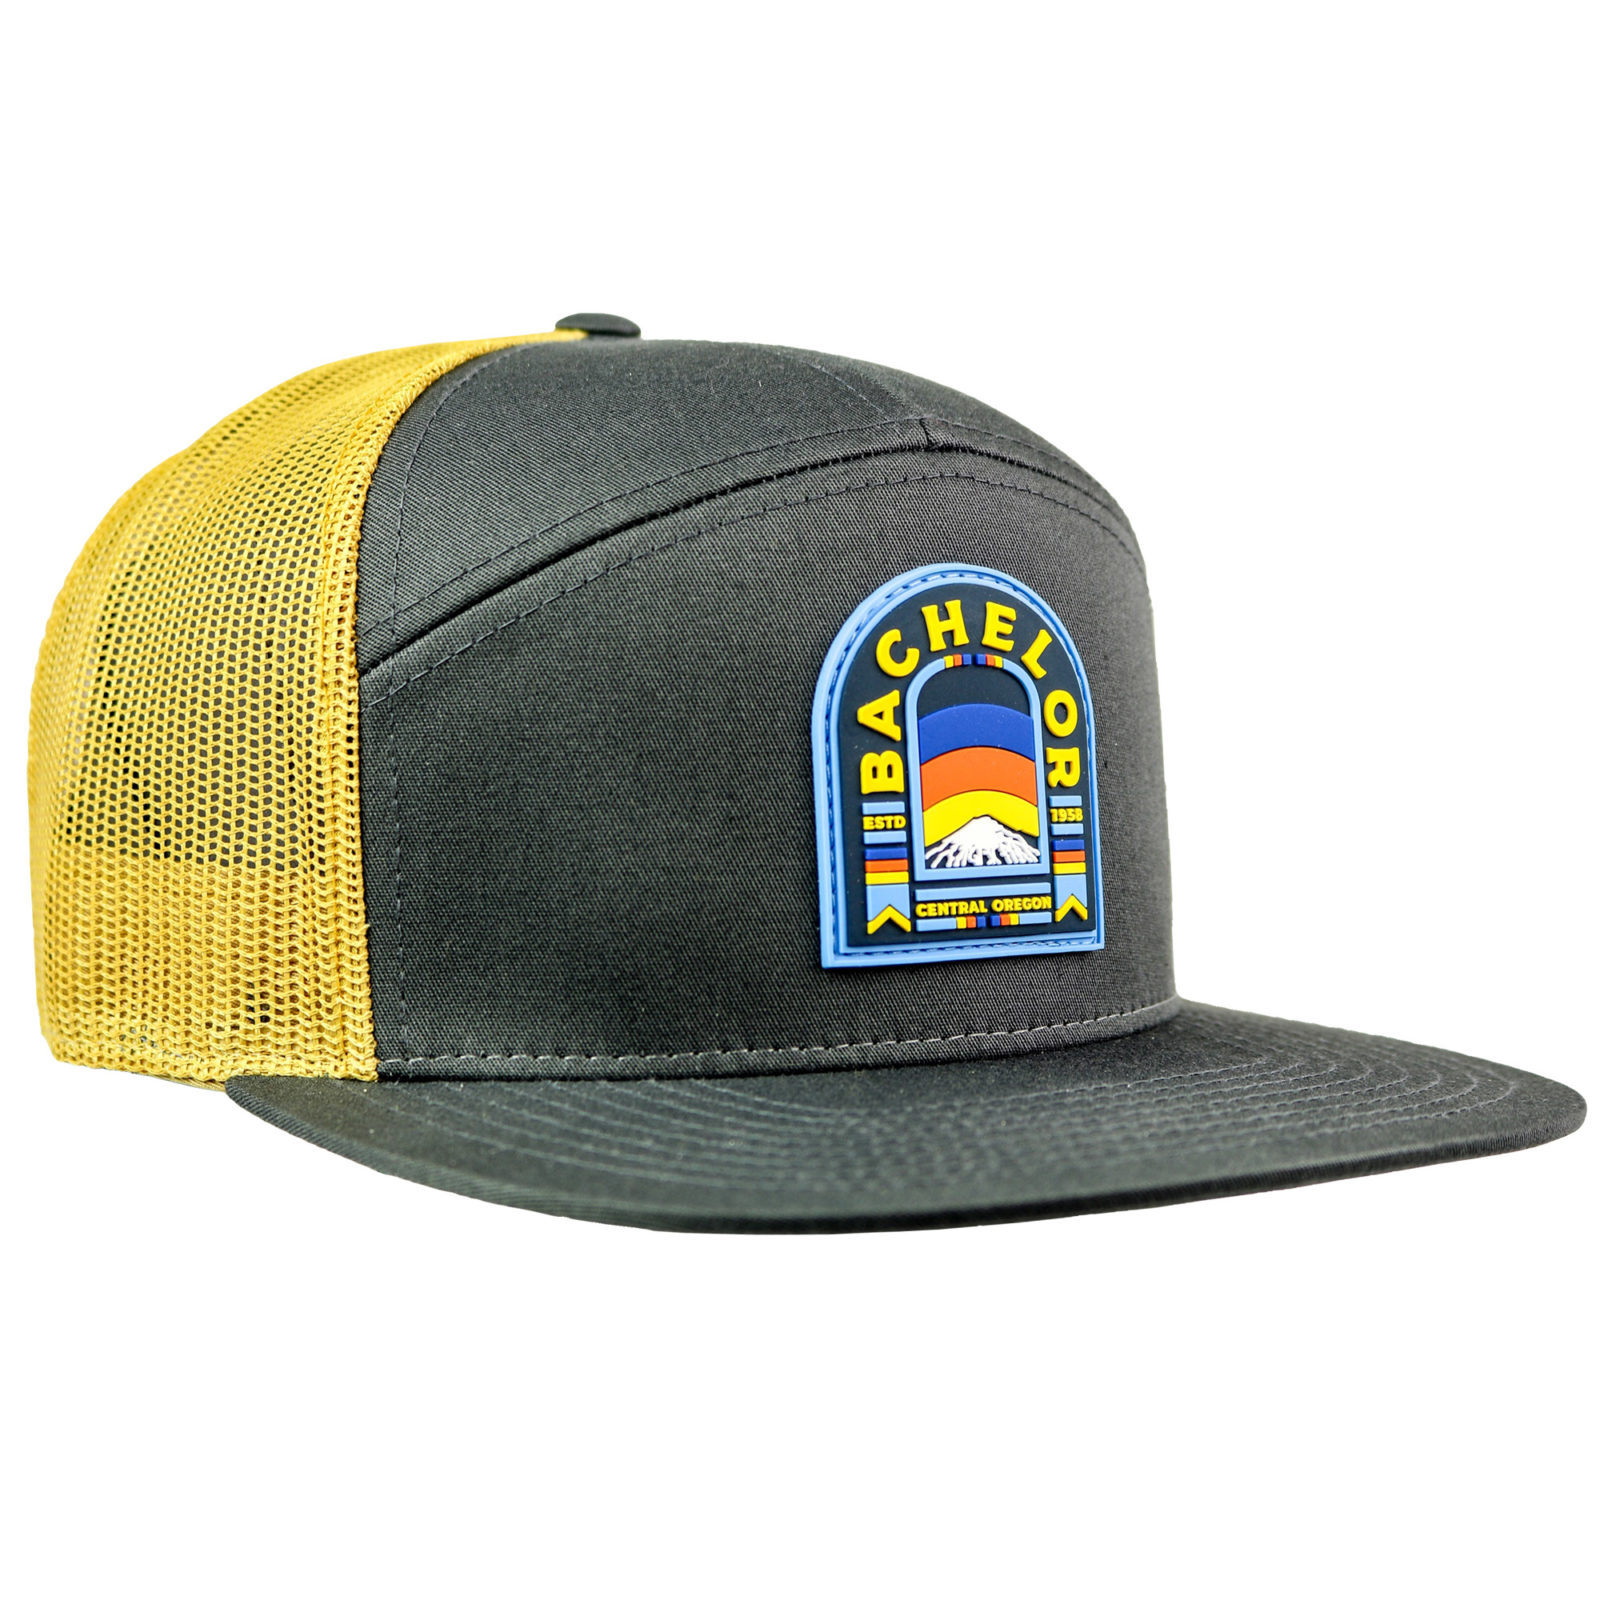 izm-productphoto-hat-gray-yellow